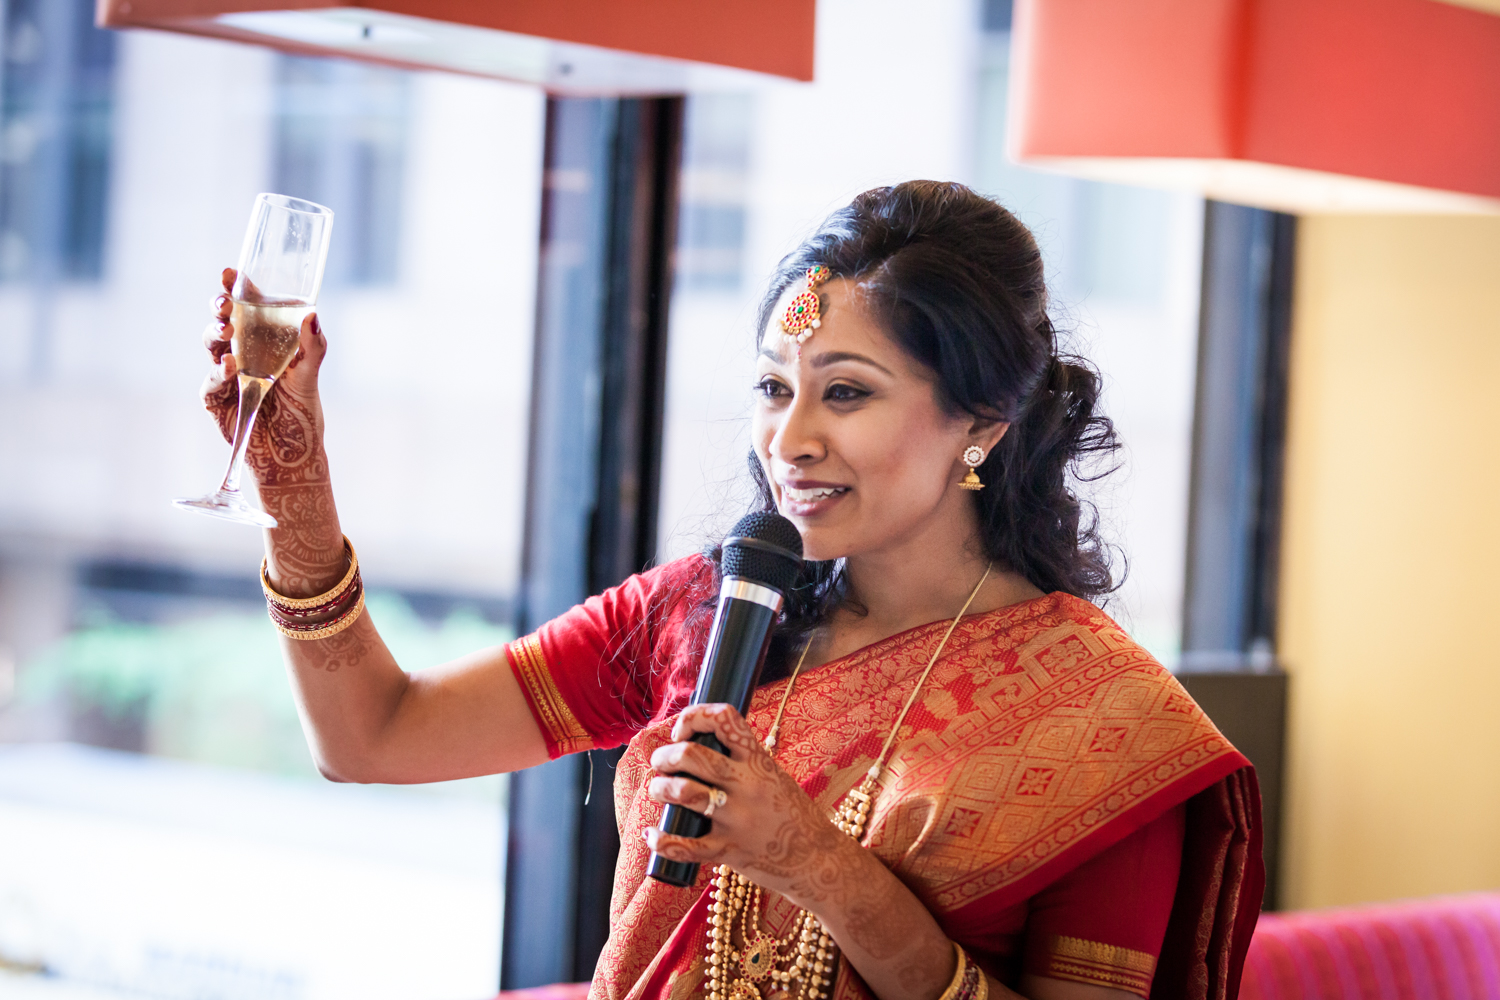 Indian bride in red sari holding up champagne glass at a NYC City Hall Indian wedding